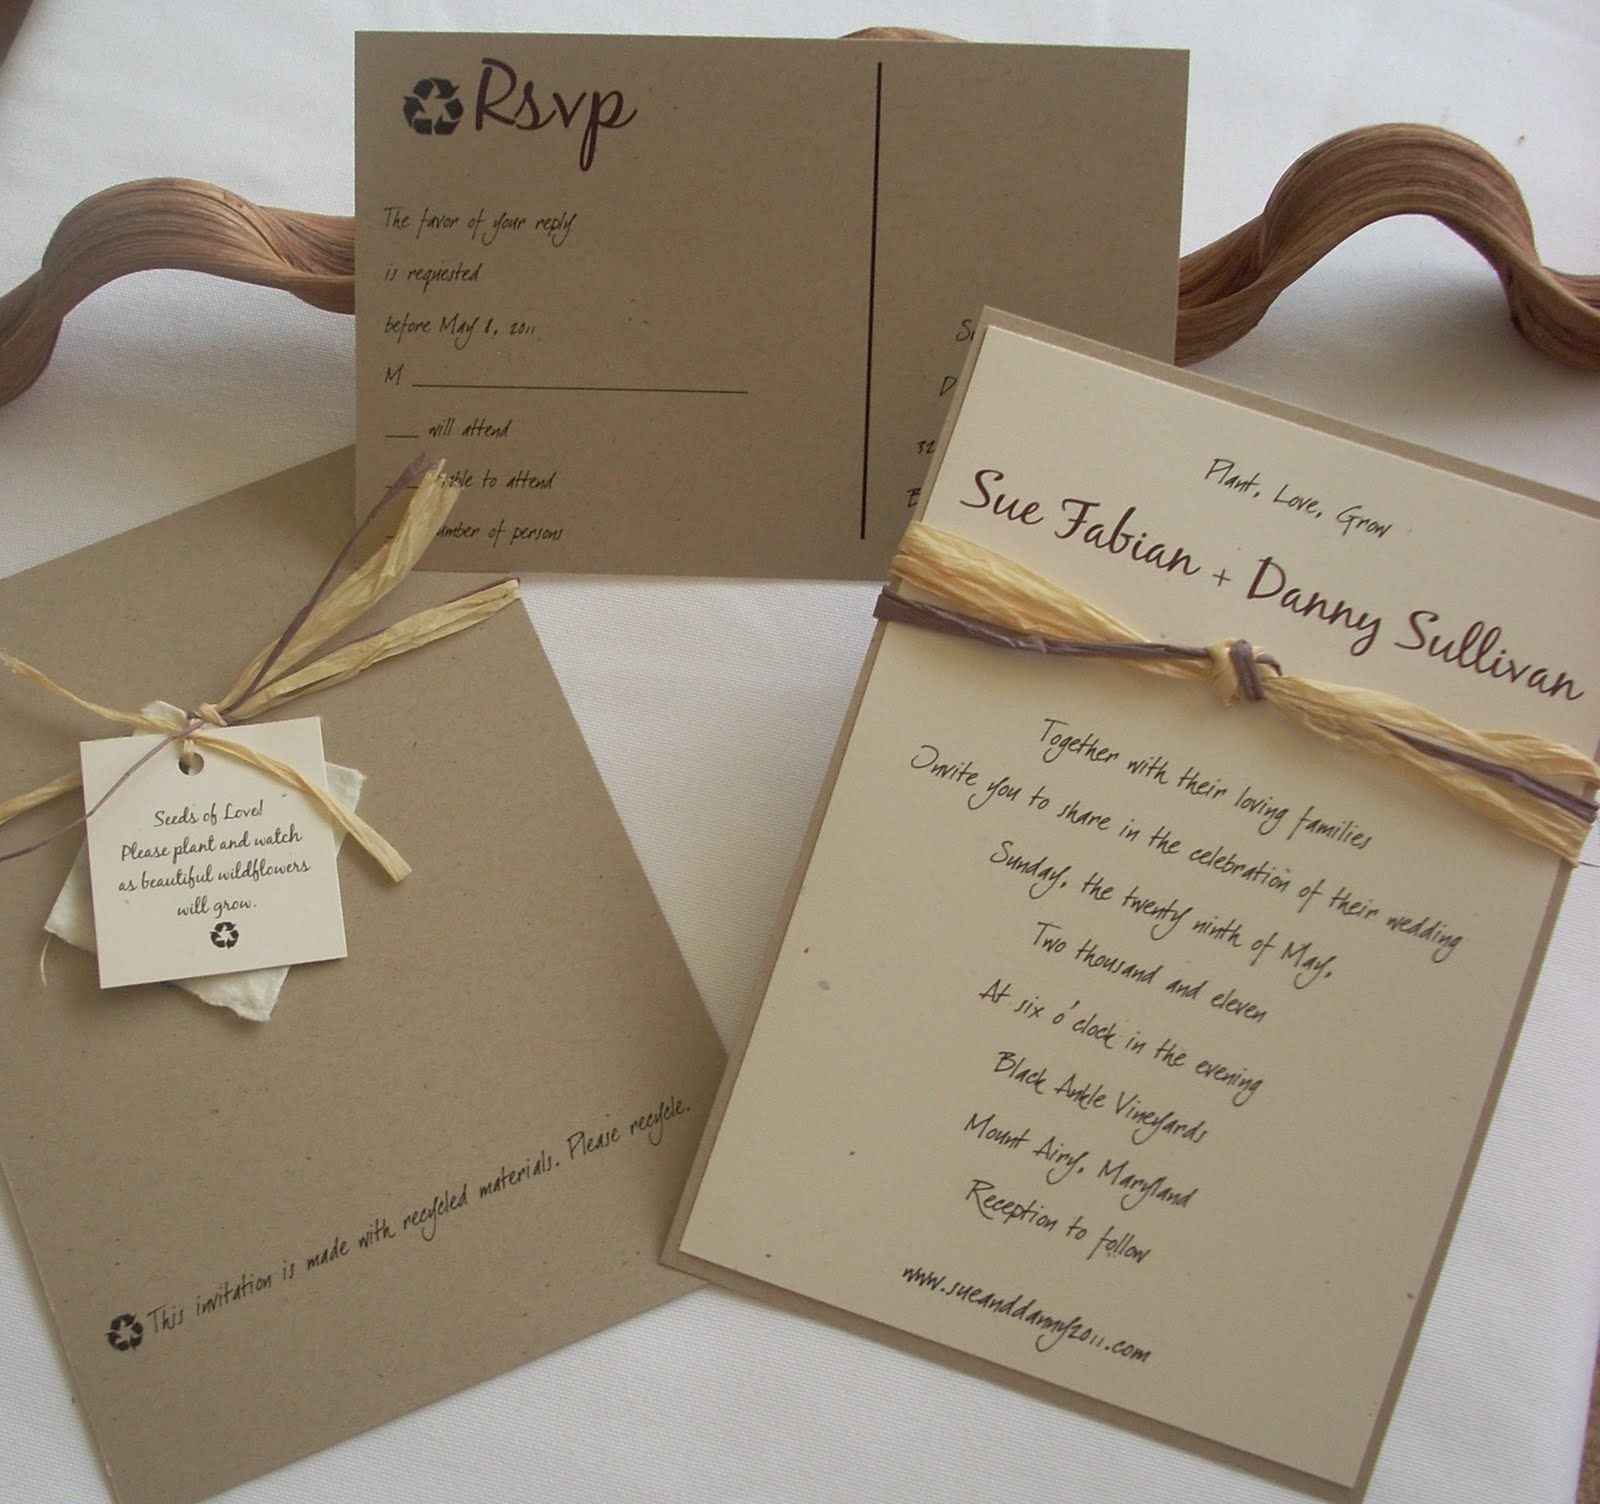 Recycled Paper Wedding Invitations: Please Recycle Wedding Invitation By This & That Creations